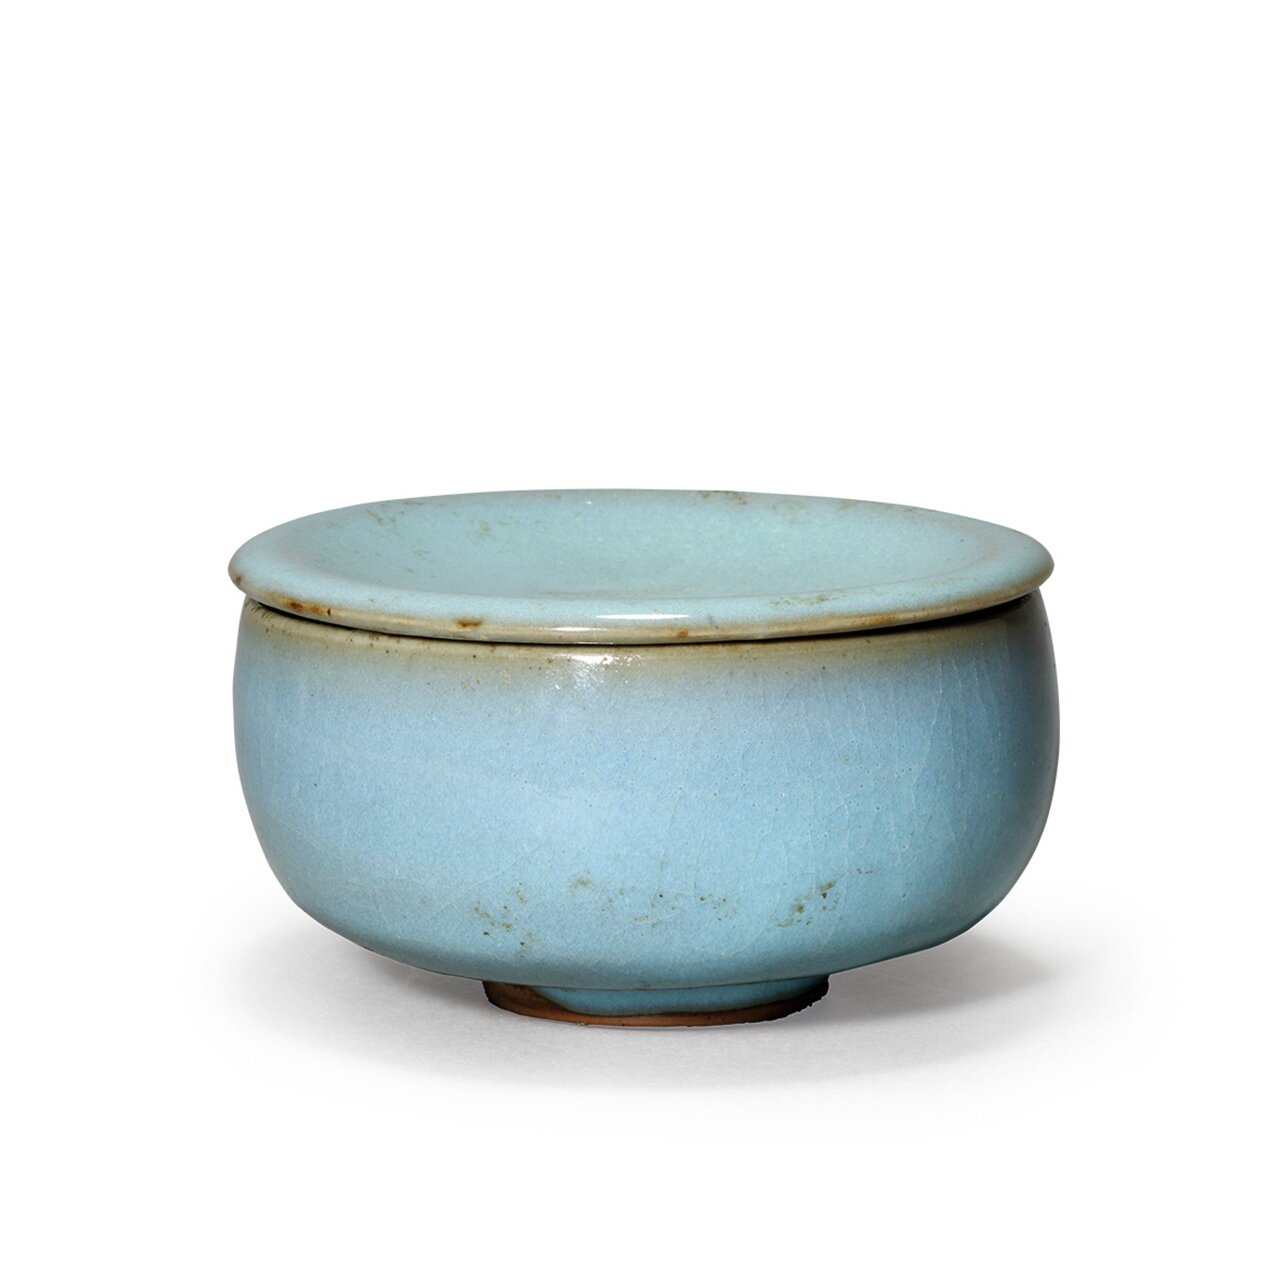 An extremely rare junyao lavender blue glazed teabowl with cover, Northern Song Dynasty (AD960-1127)